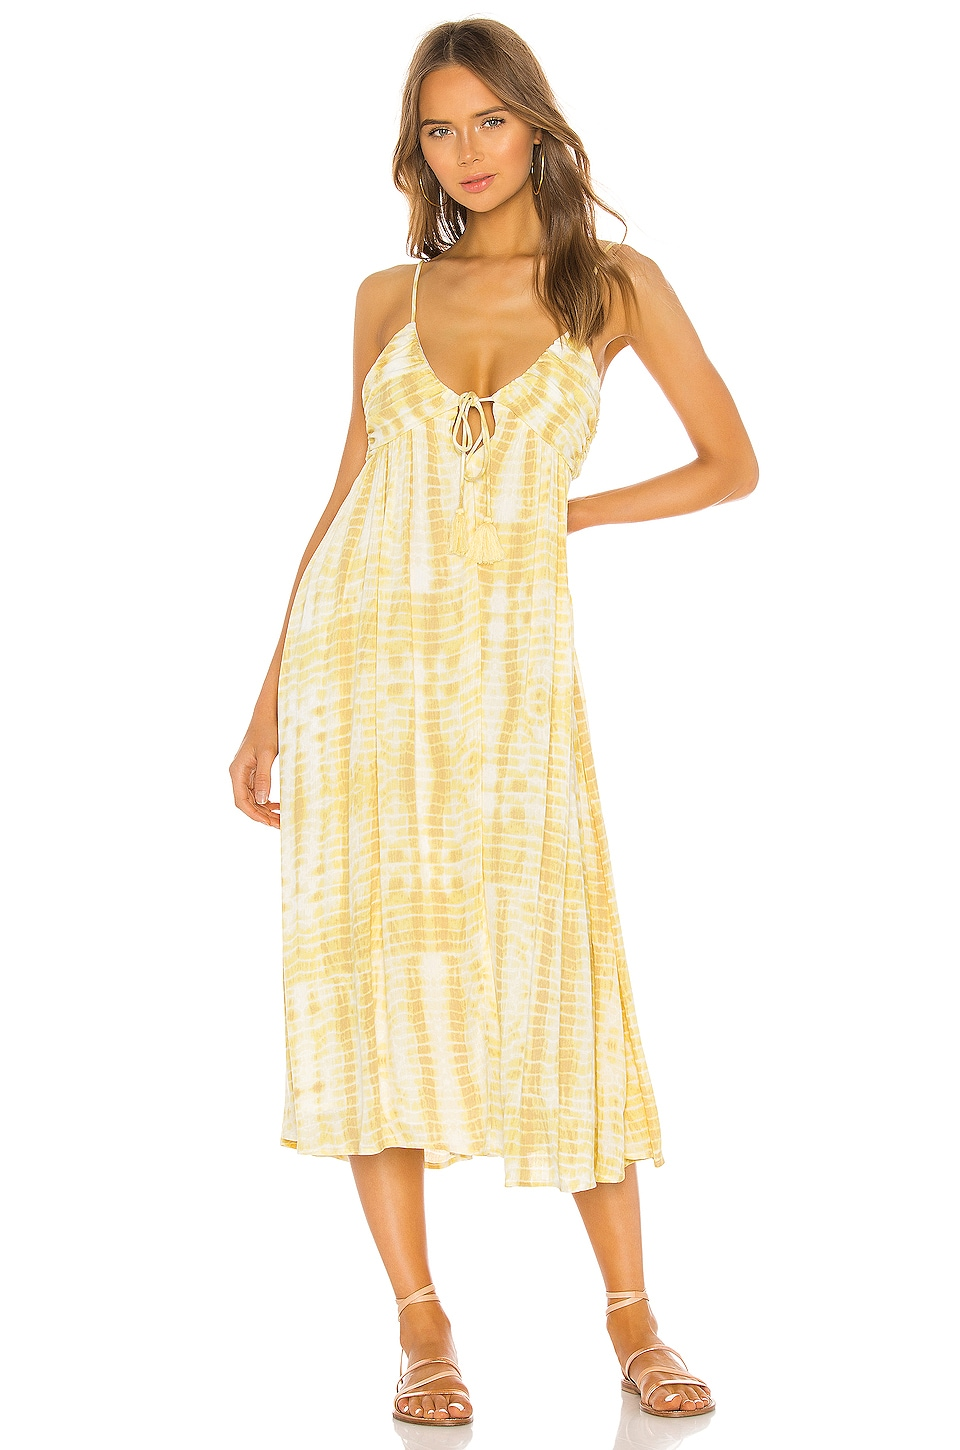 MAJORELLE Kiara Midi Dress in Yellow Tie Dye